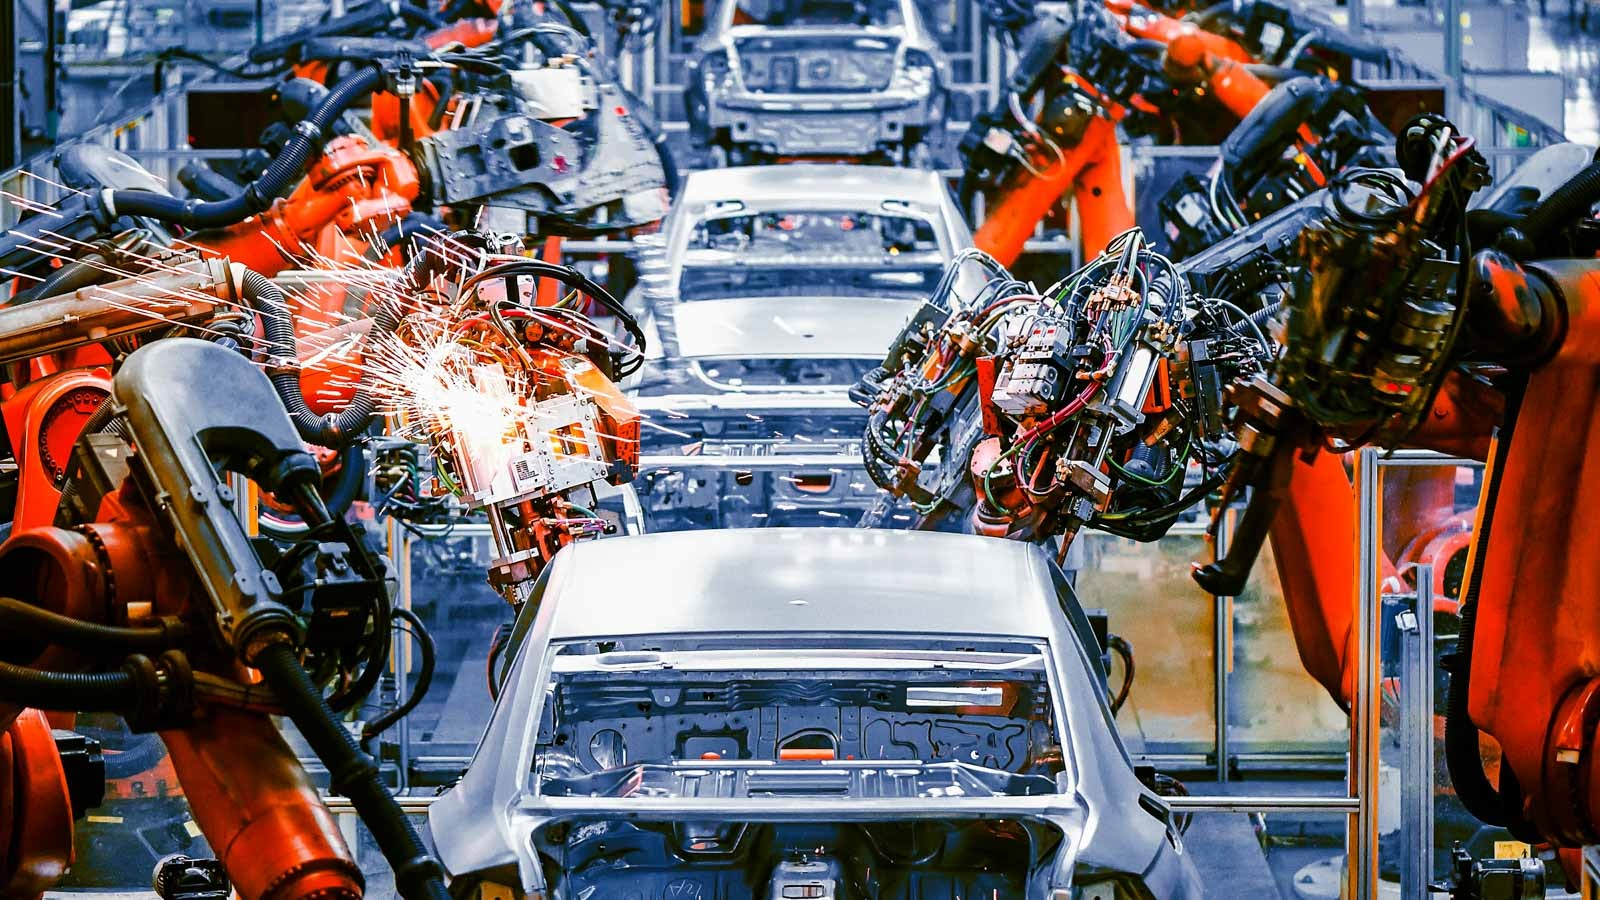 Line of cars being worked on by robotic arms. (Image by Shutterstock/Jensen.)